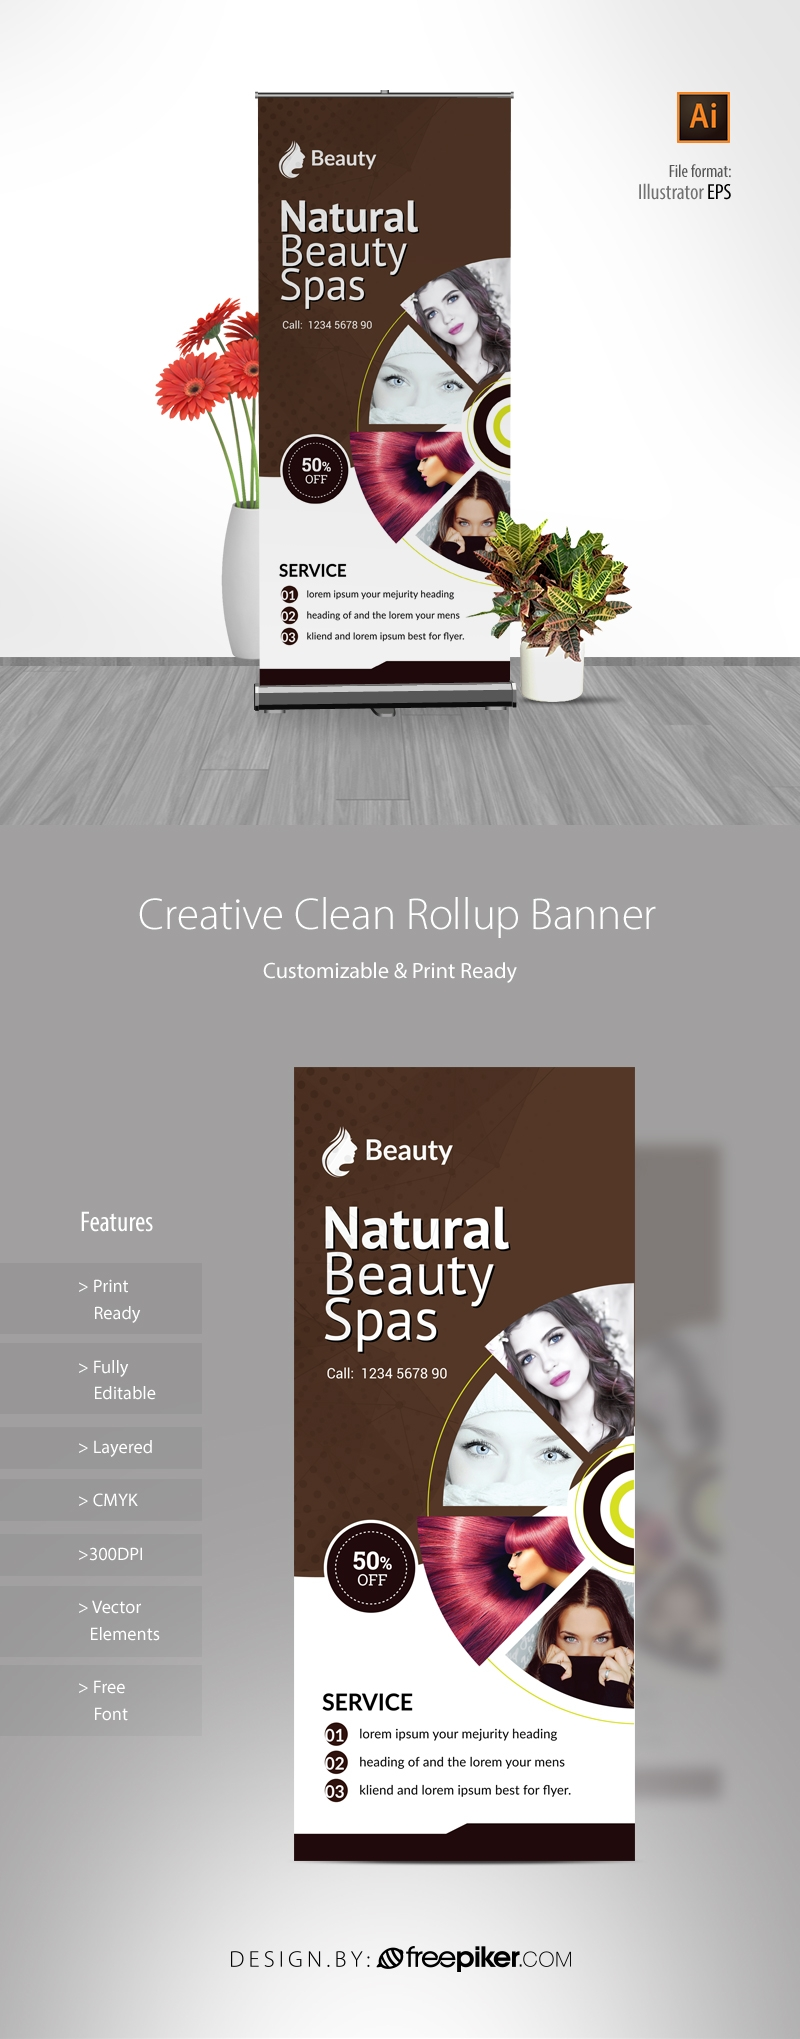 Natural Beauty Spa Rollup Banner